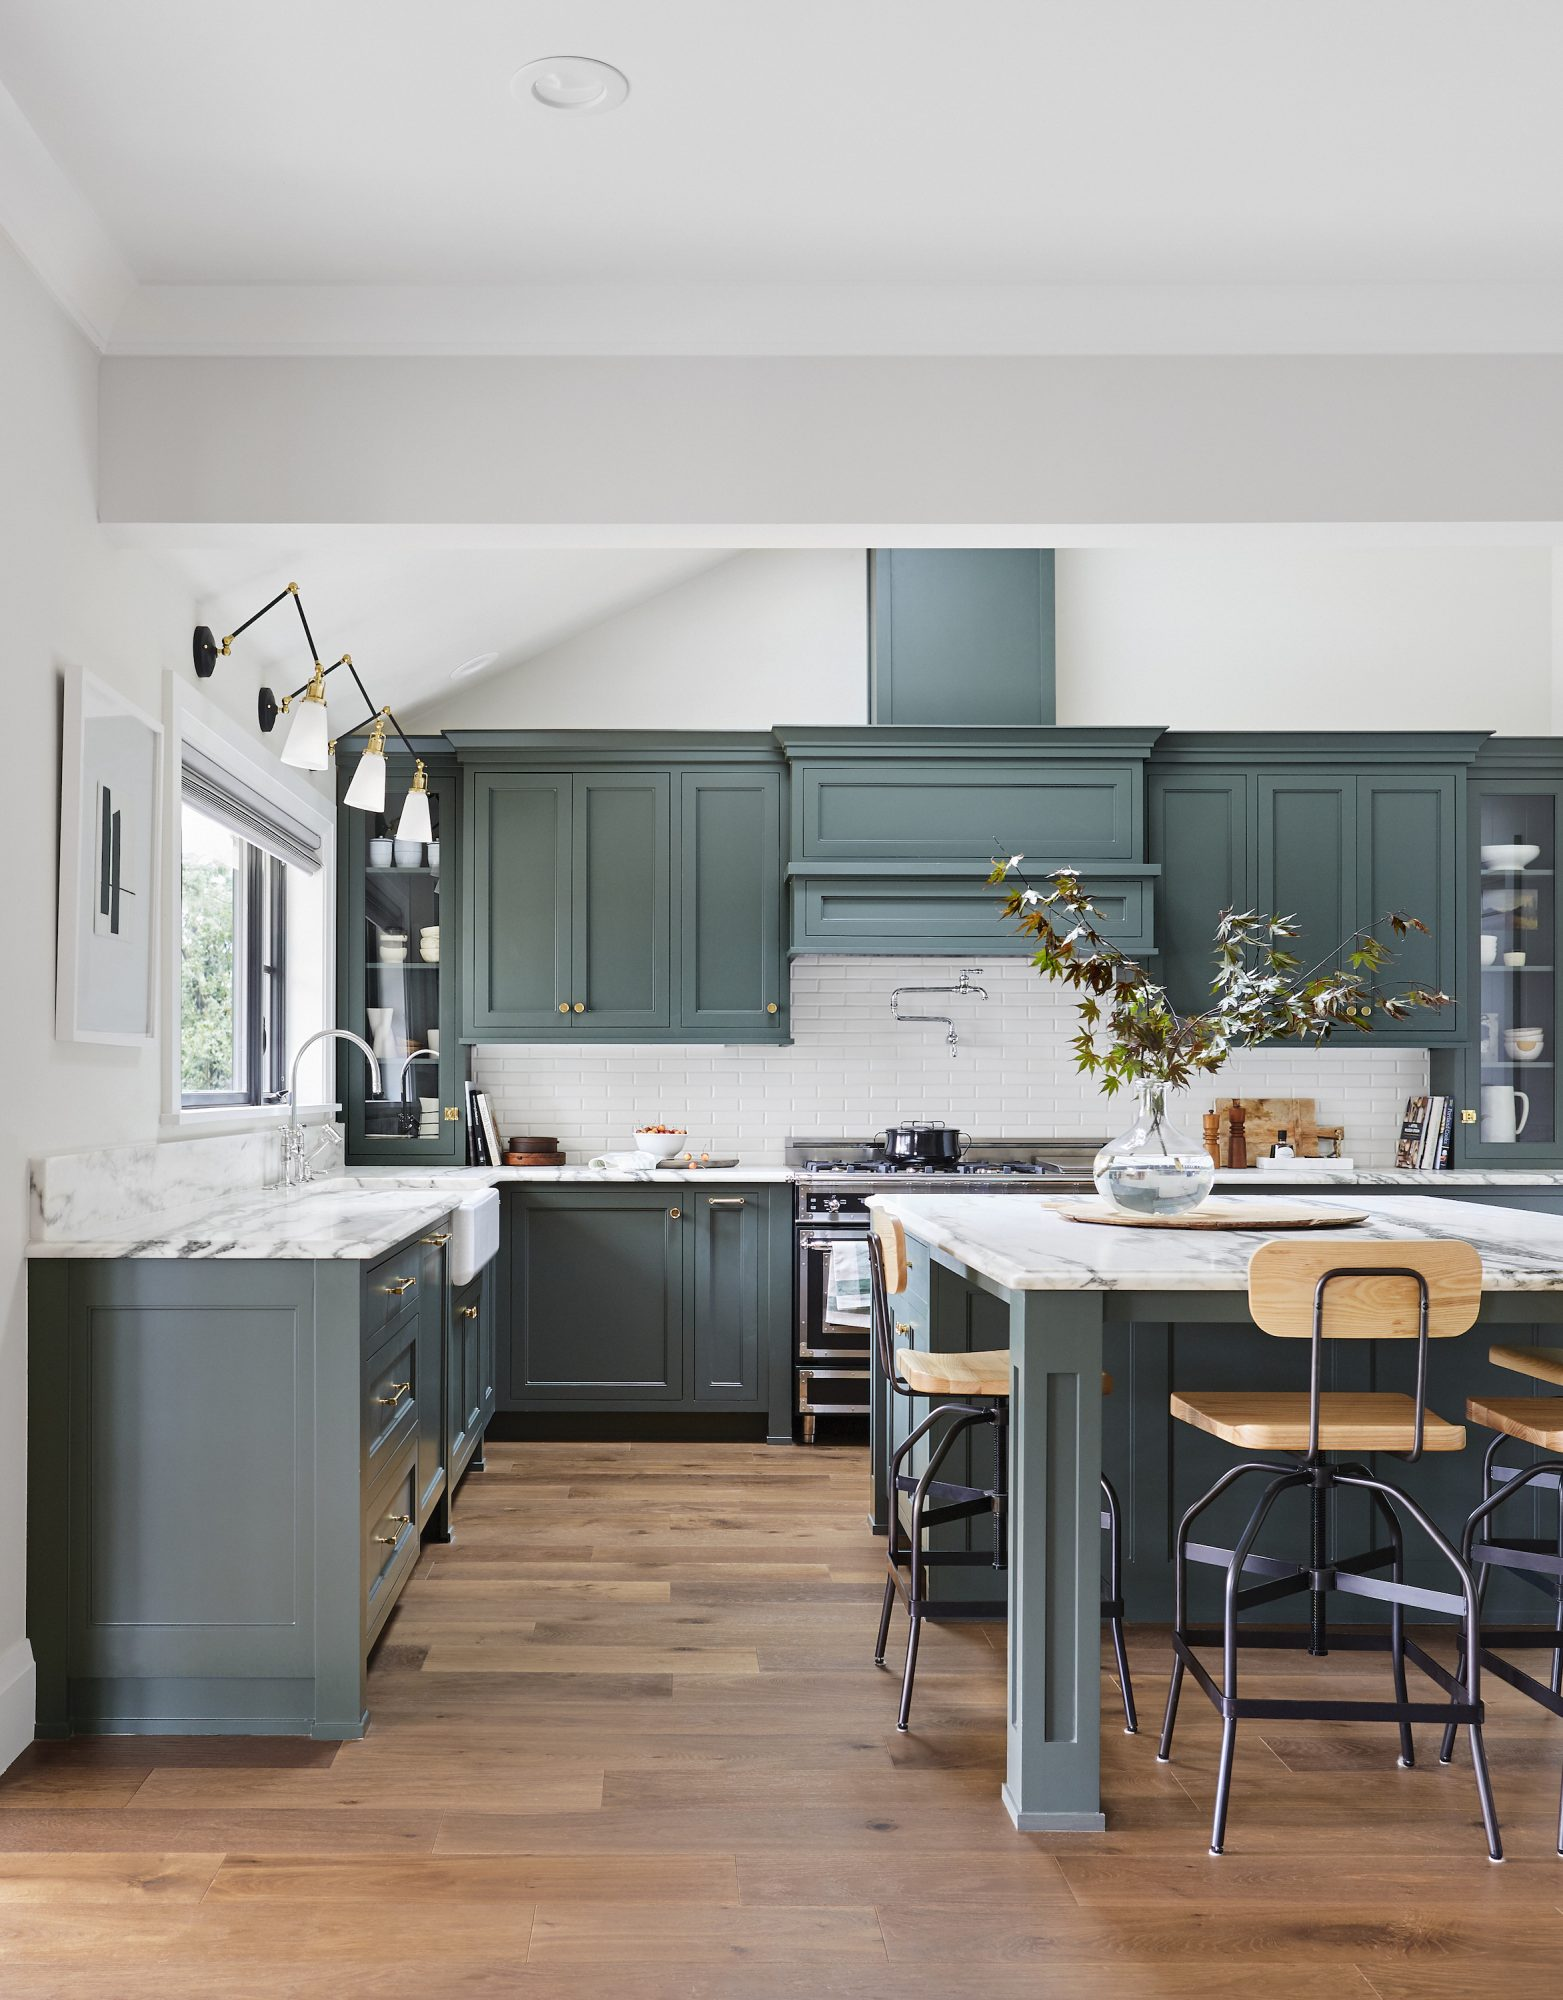 Beautiful kitchen with green cabinets